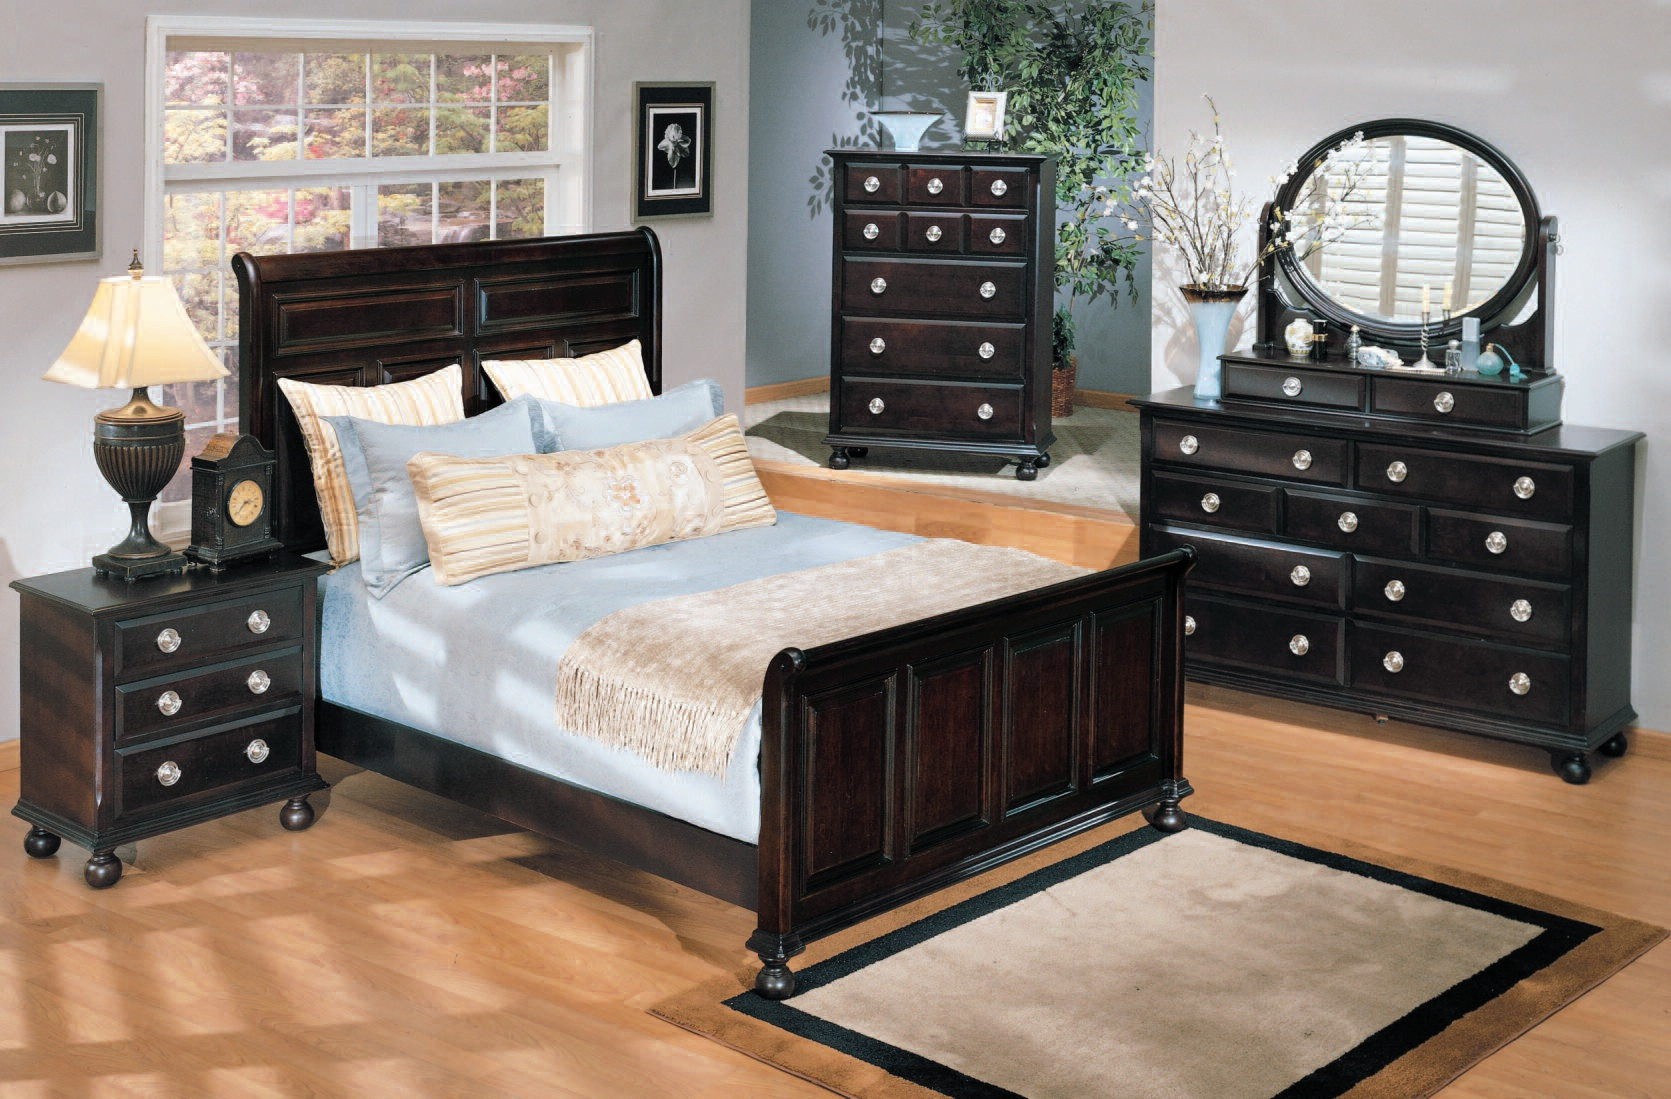 Acme furniture amherst espresso master bedroom set the classy home No dresser in master bedroom